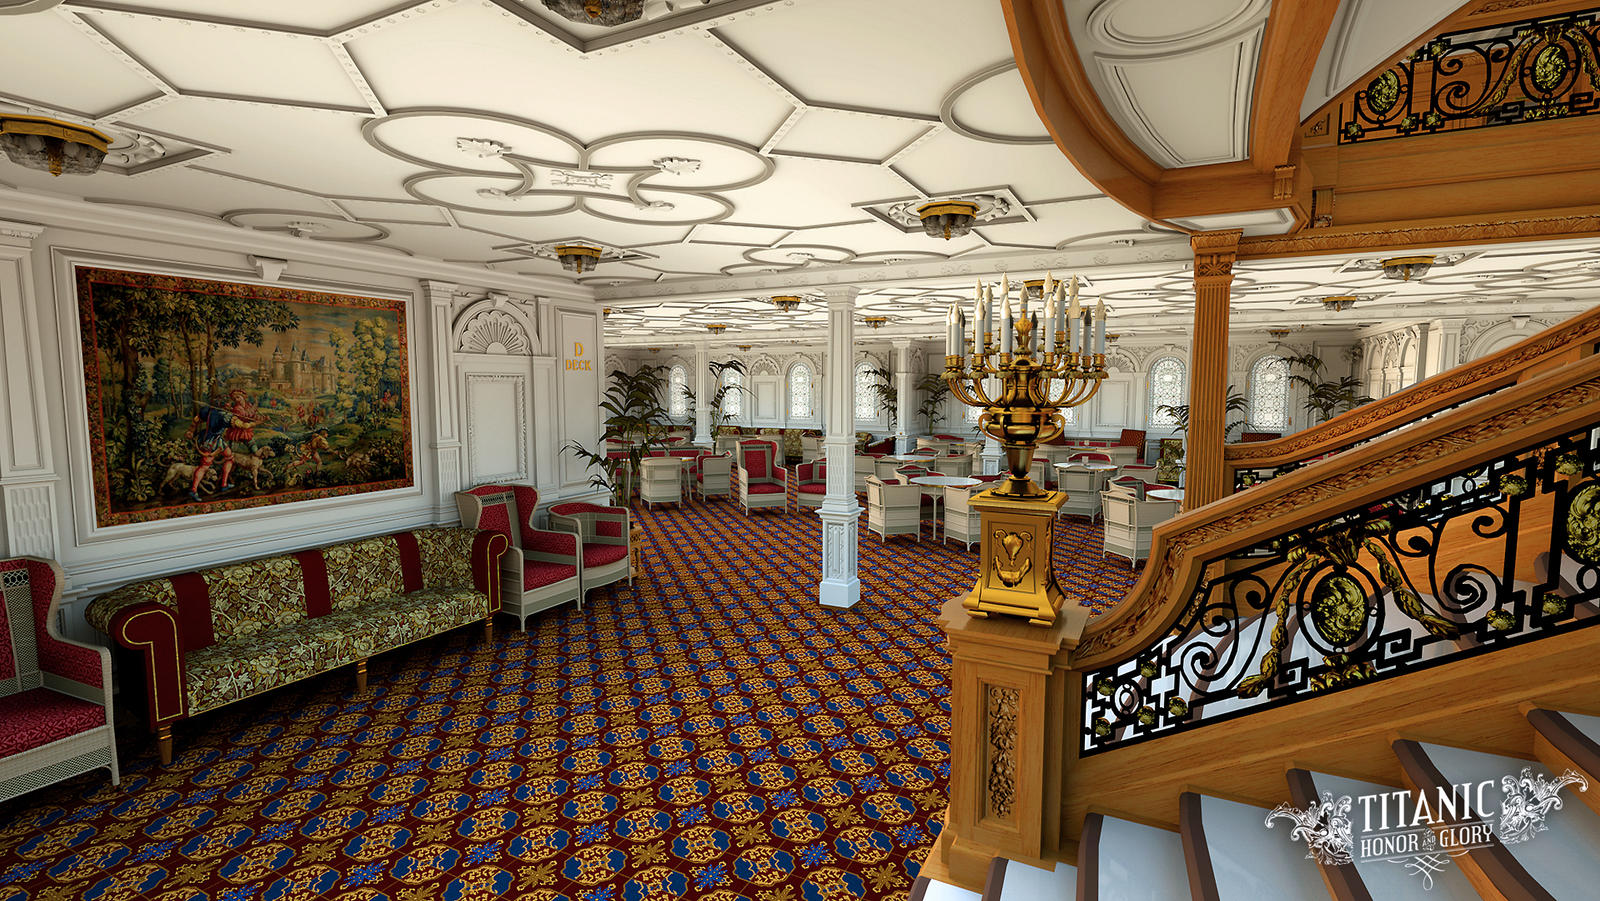 L'arnaque au tapis Titanic_s_first_class_reception_room_by_titanichonorandglory-d6xqqn3